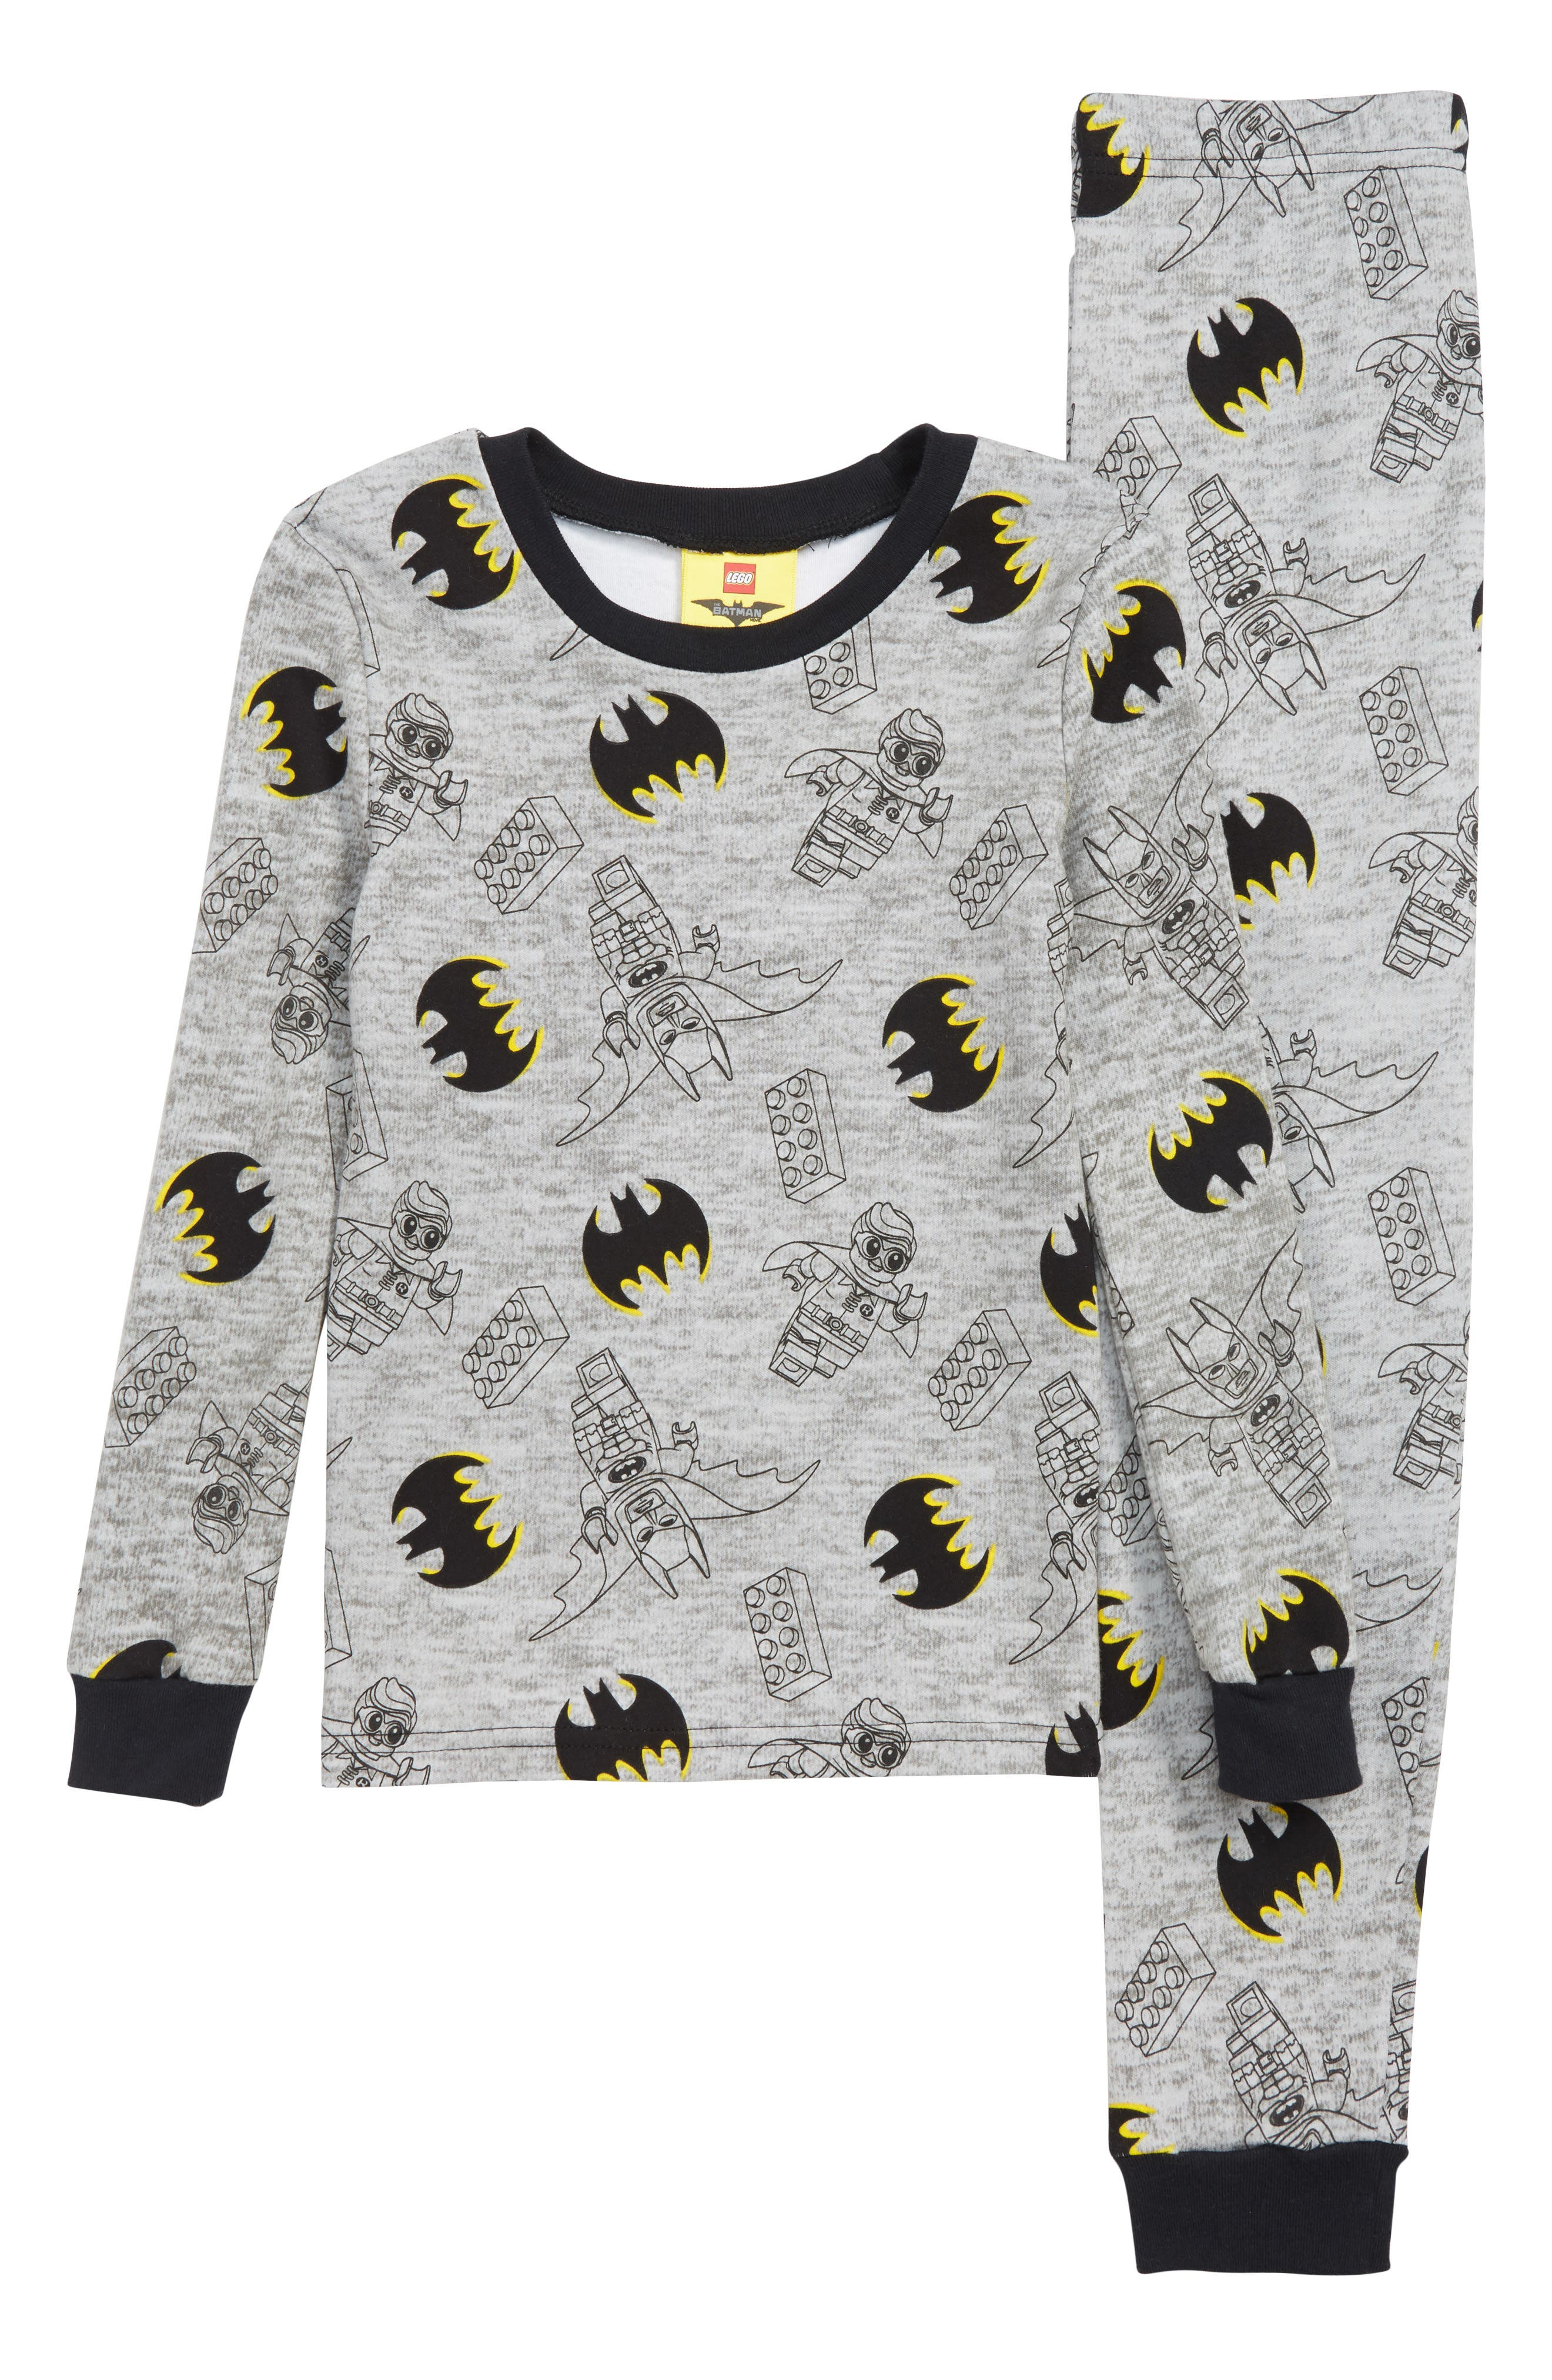 Batman Fitted Two-Piece Pajamas,                             Main thumbnail 1, color,                             GRY/ BLK